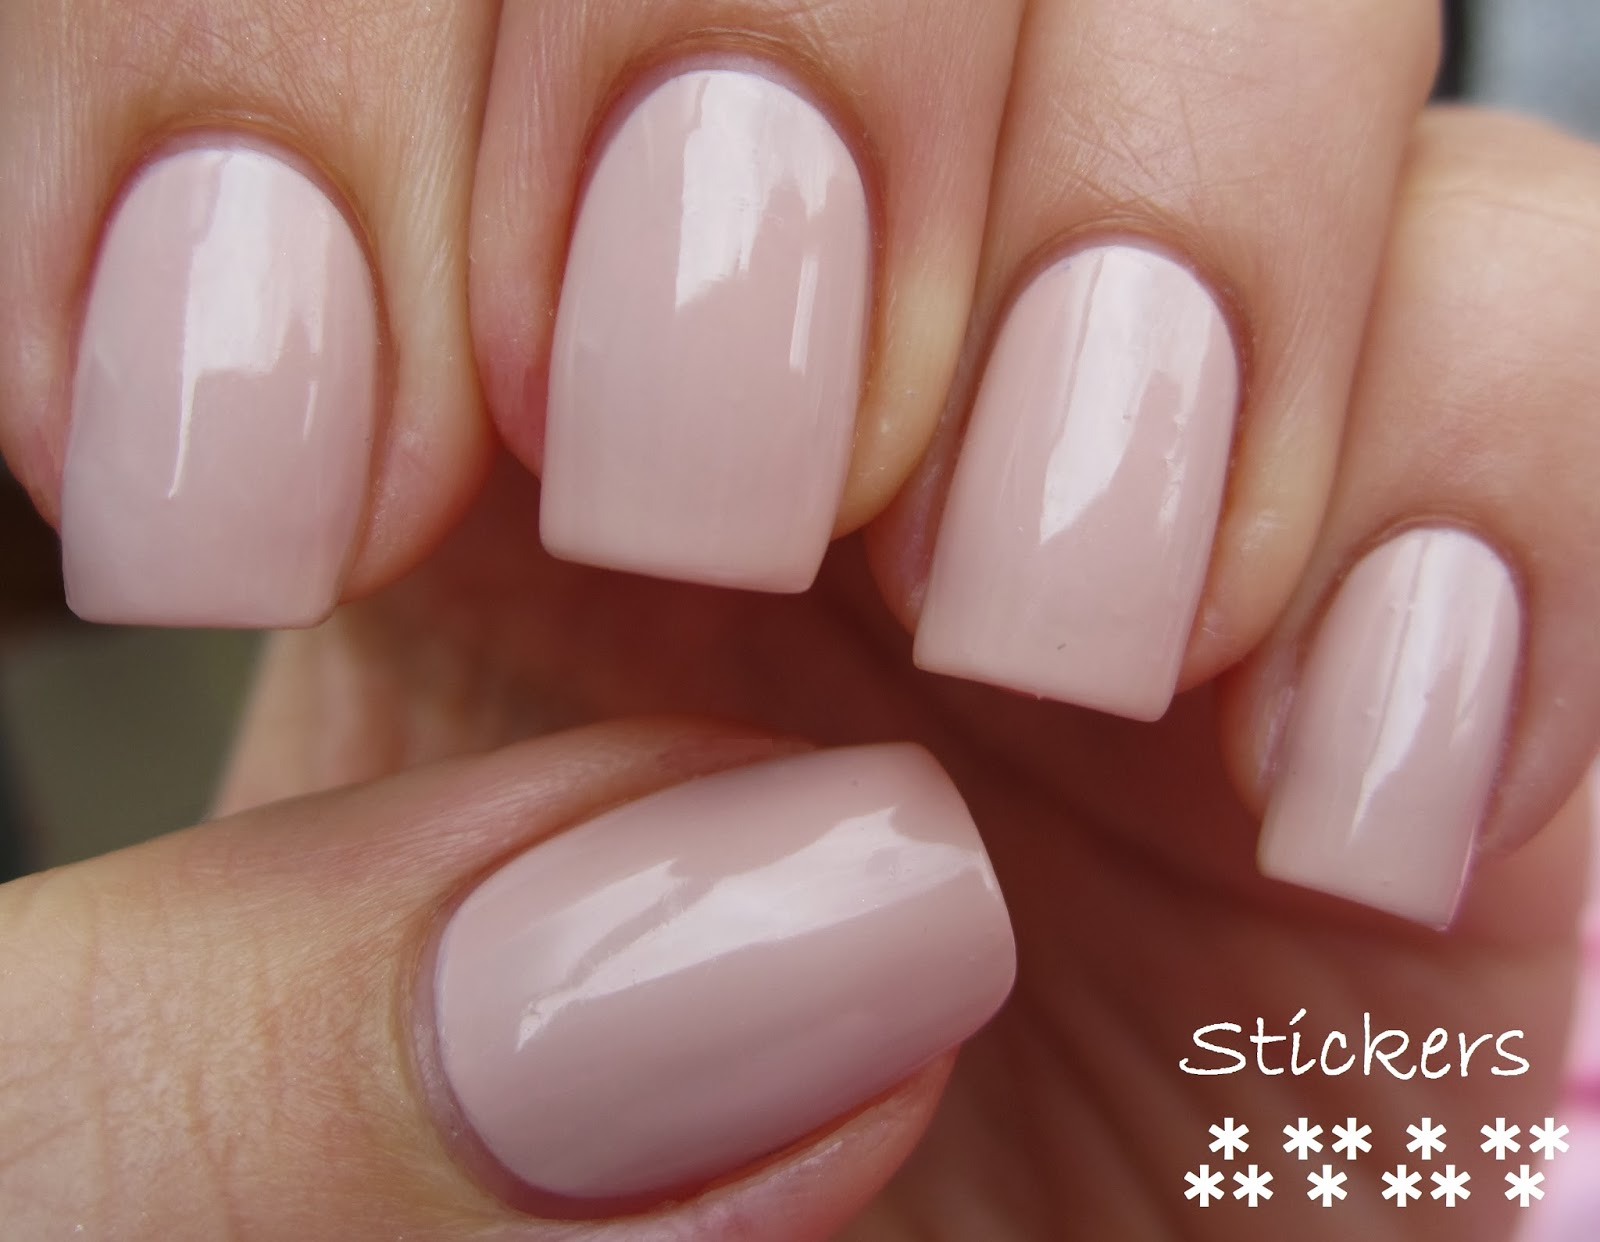 FluffyWuff Nails: Essie Topless and Barefoot swatch